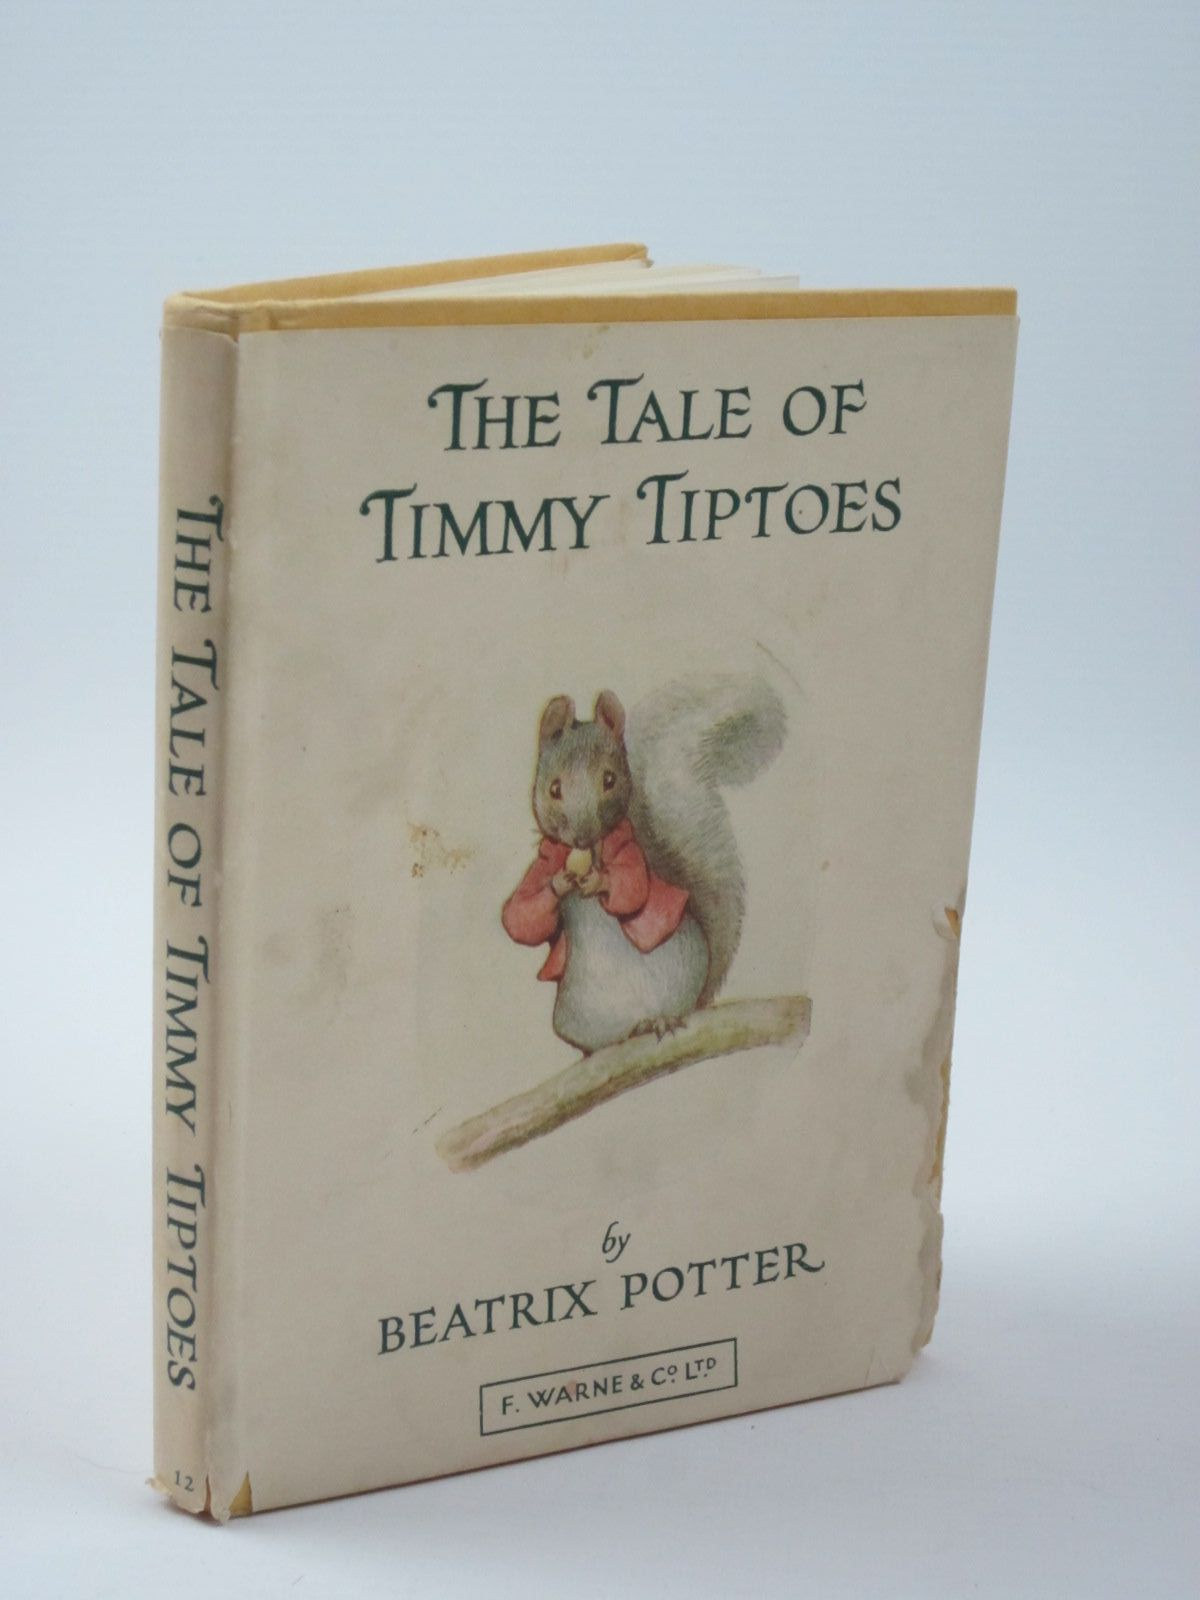 Photo of THE TALE OF TIMMY TIPTOES written by Potter, Beatrix illustrated by Potter, Beatrix published by Frederick Warne & Co Ltd. (STOCK CODE: 1309940)  for sale by Stella & Rose's Books